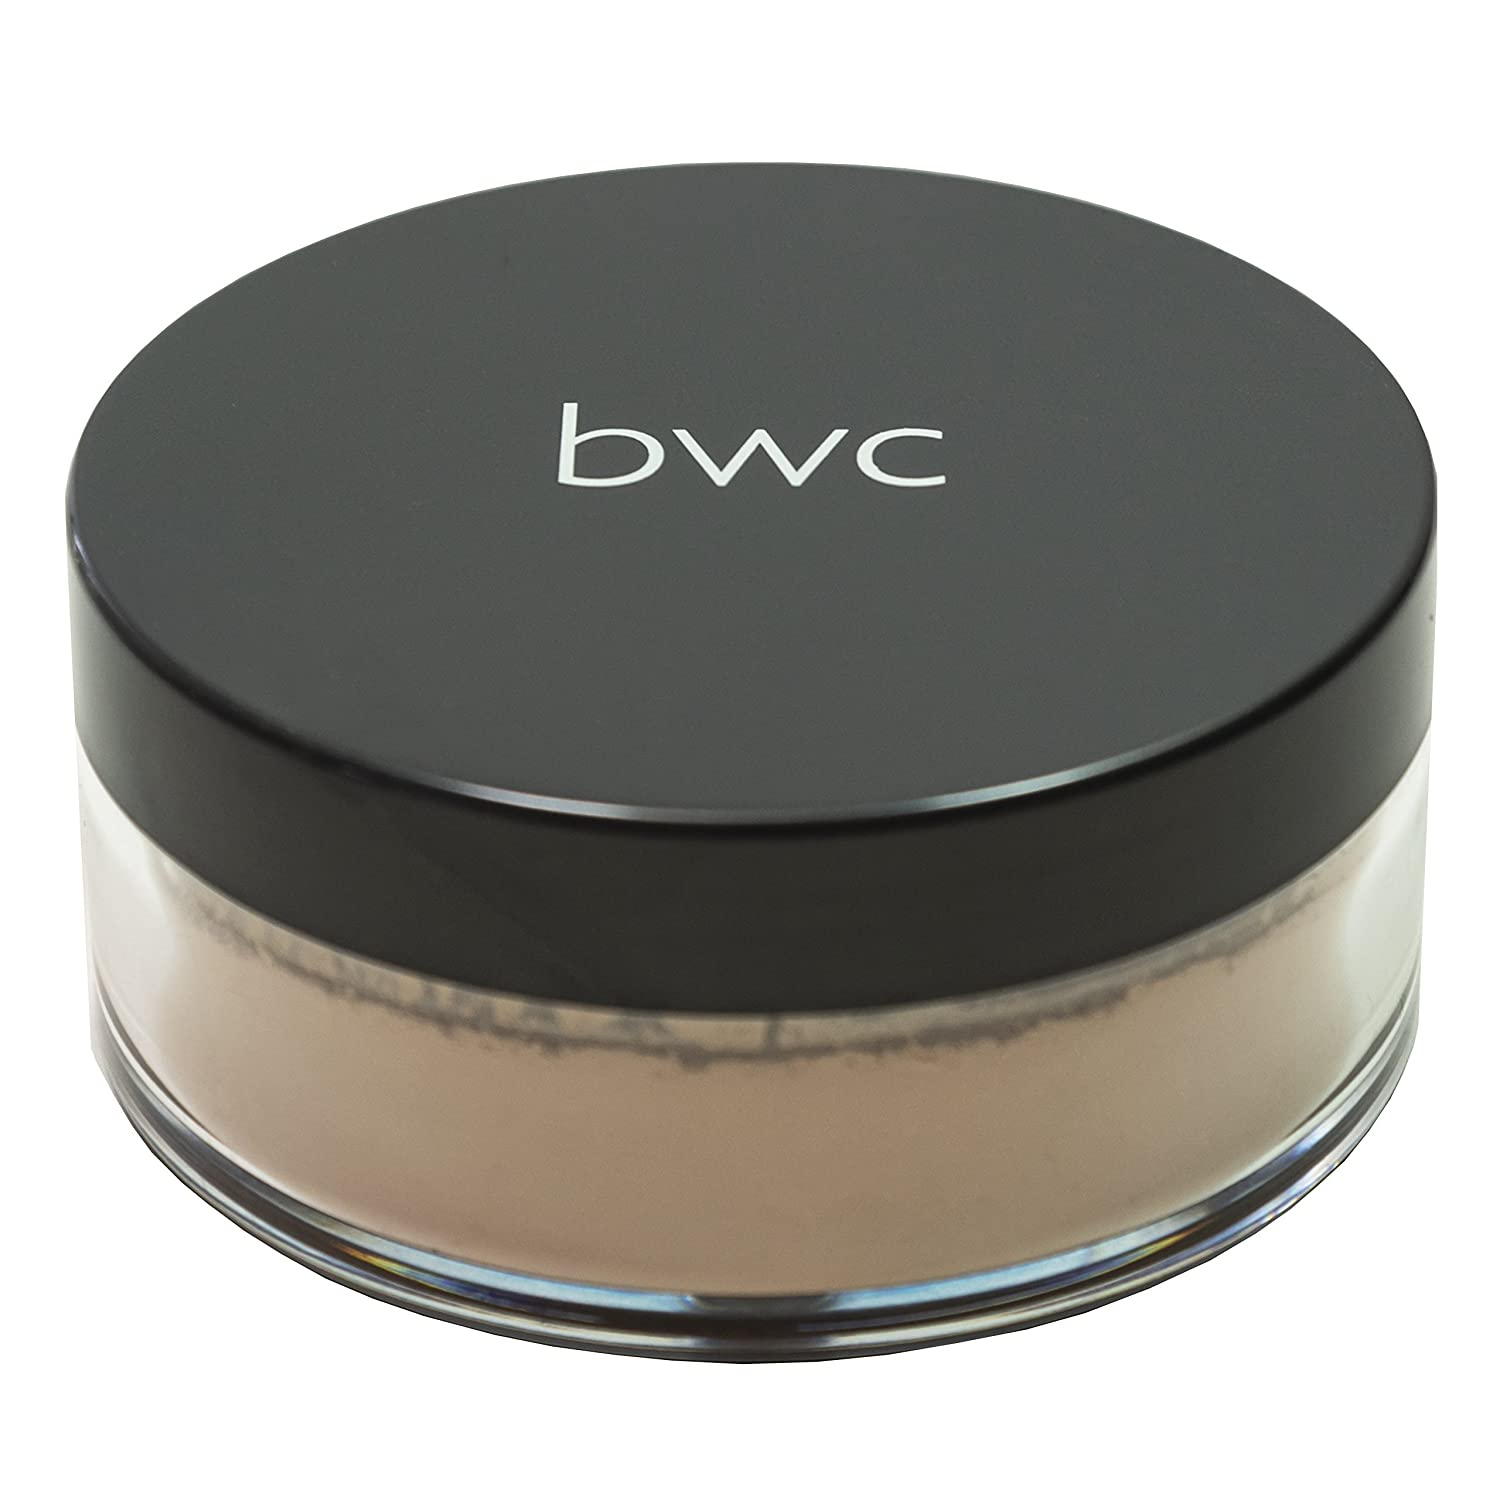 Beauty Without Cruelty Ultrafine Loose Powder Fair Translucent Ultra Glow Cosmetics Ltd BE-1207